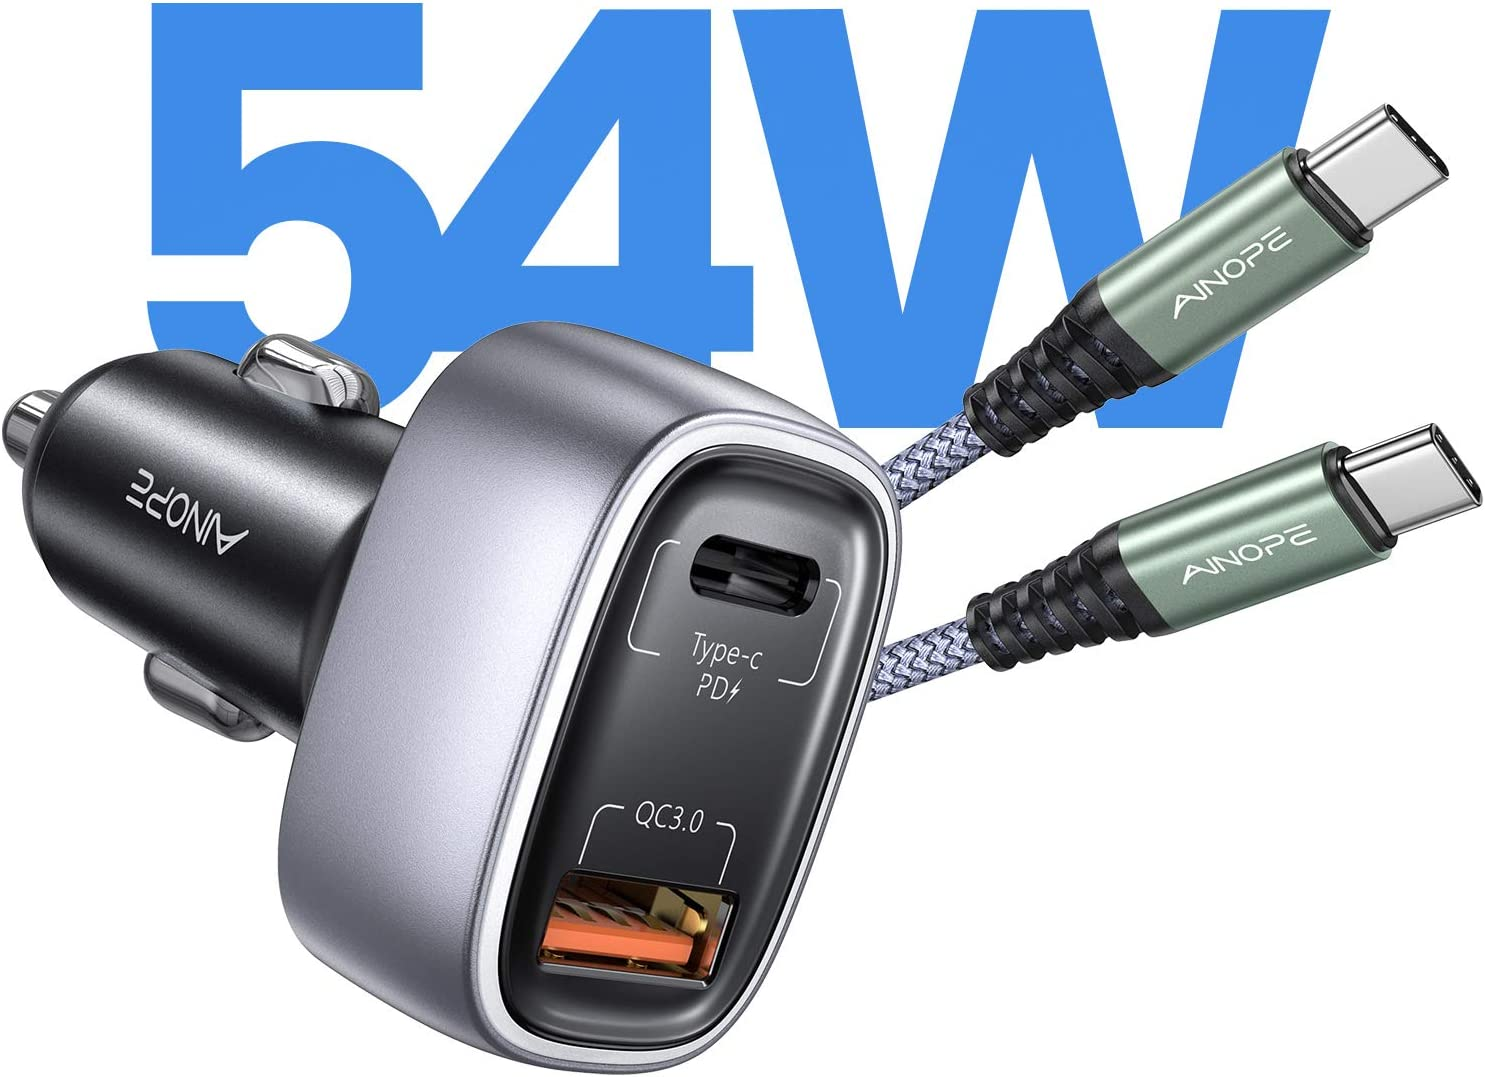 USB C Fast Car Charger, Car Fast Charger 54W PD&QC 3.0 Dual Port AINOPE Fast Charging Car Charger Compatible with iPhone 12/12 Pro Max/12 Mini, Galaxy S21+/S20+/S10, MacBook Pro/Air, iPad Pro